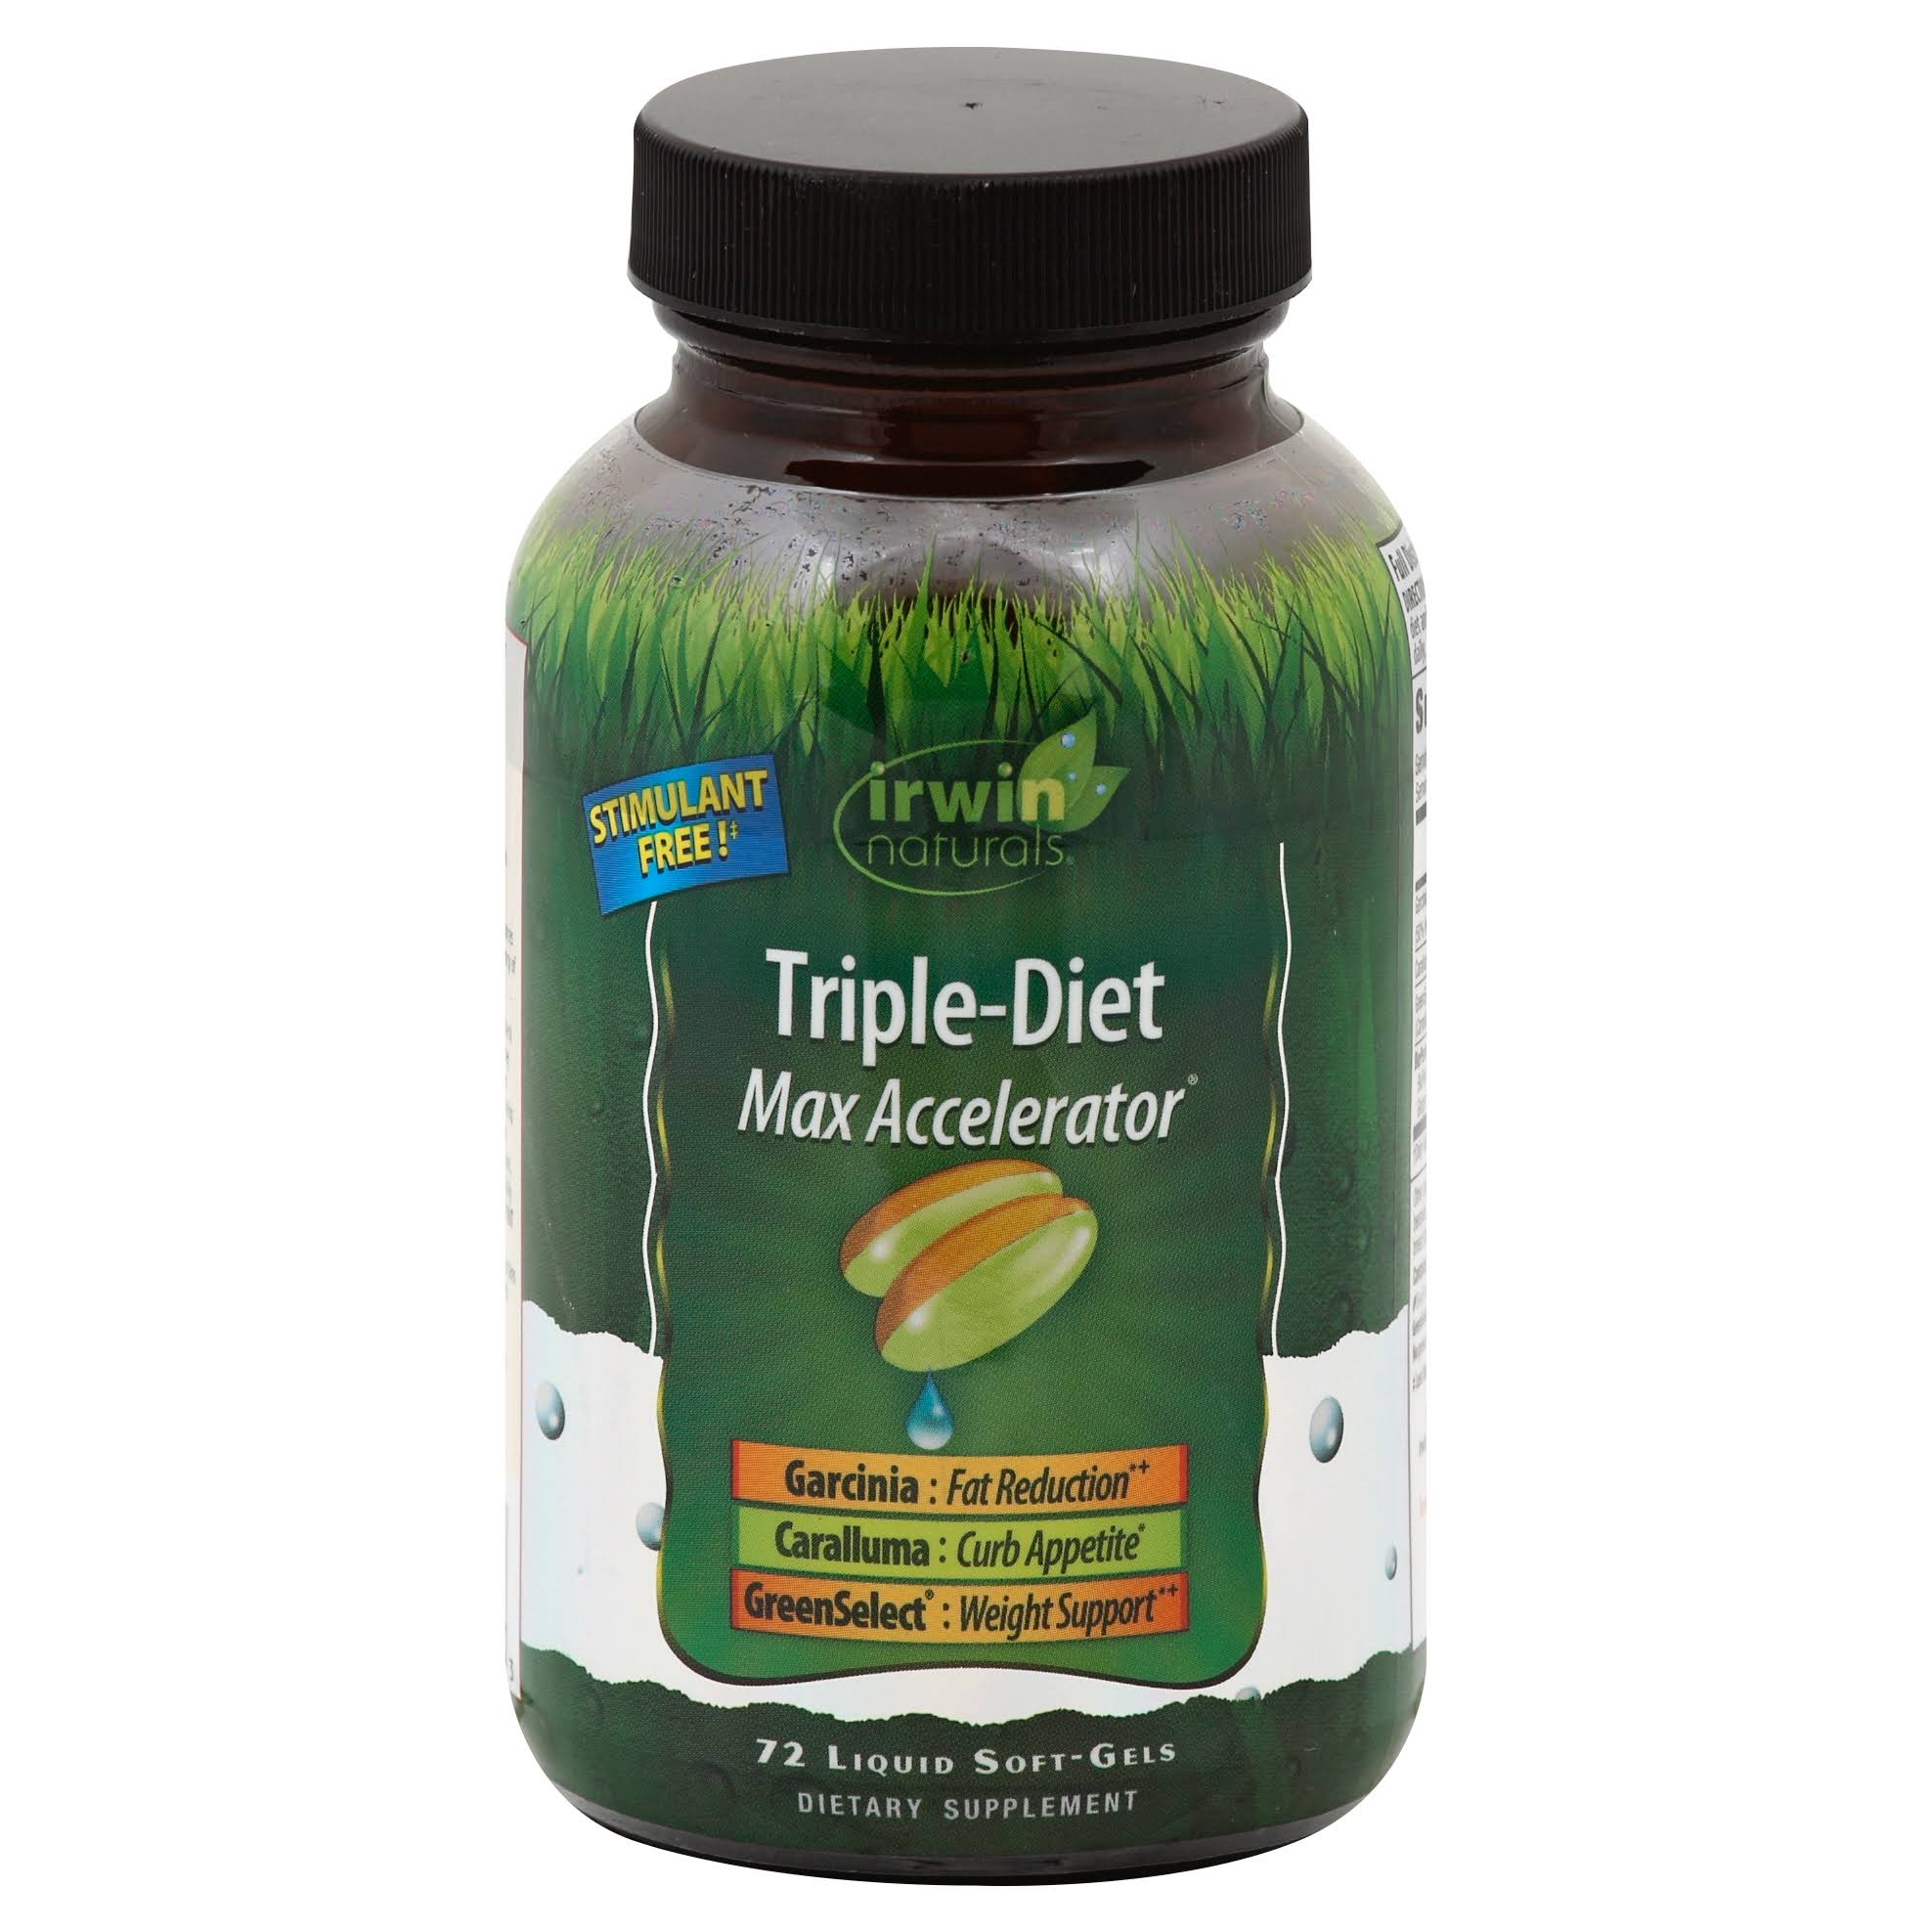 Irwin Naturals Triple-Diet Max Accelerator - 72 Liquid Softgels